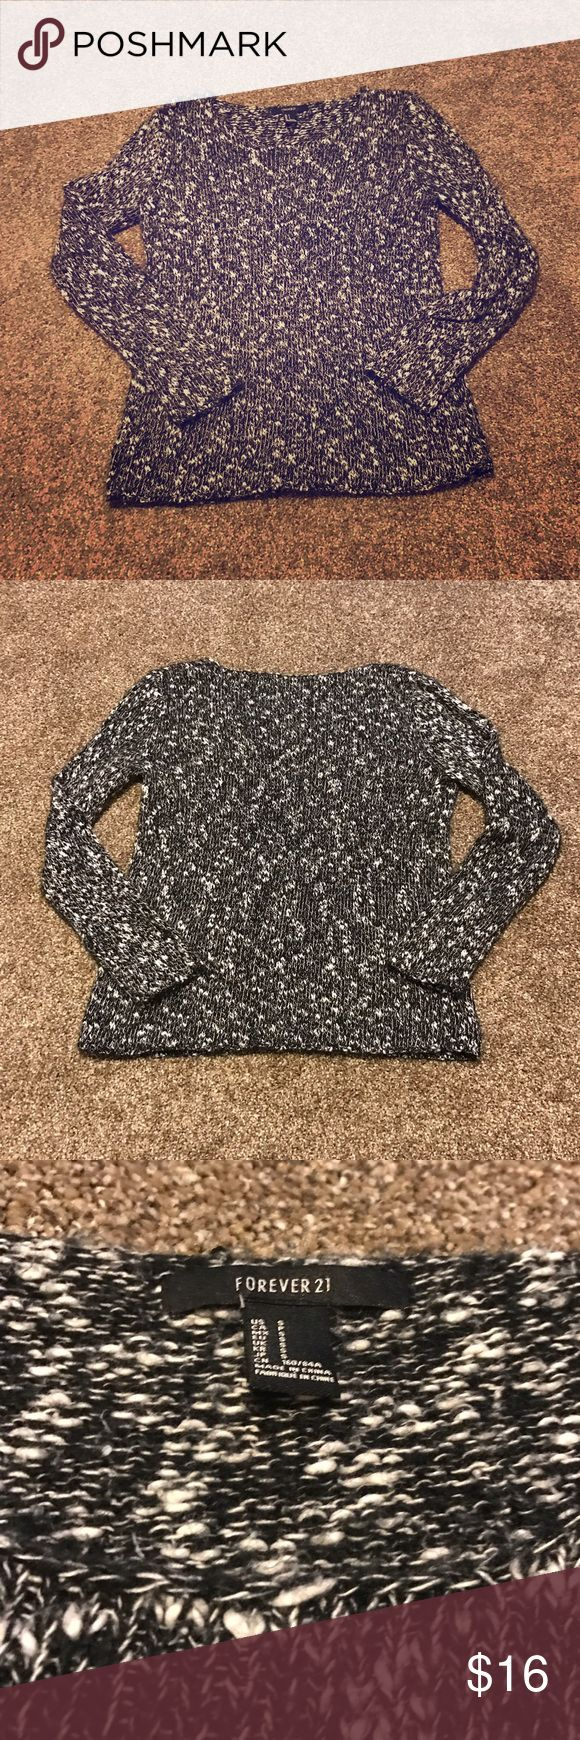 Marled Sweater Size small, black and white marled sweater. Crew neck. Forever 21 Sweaters Crew & Scoop Necks